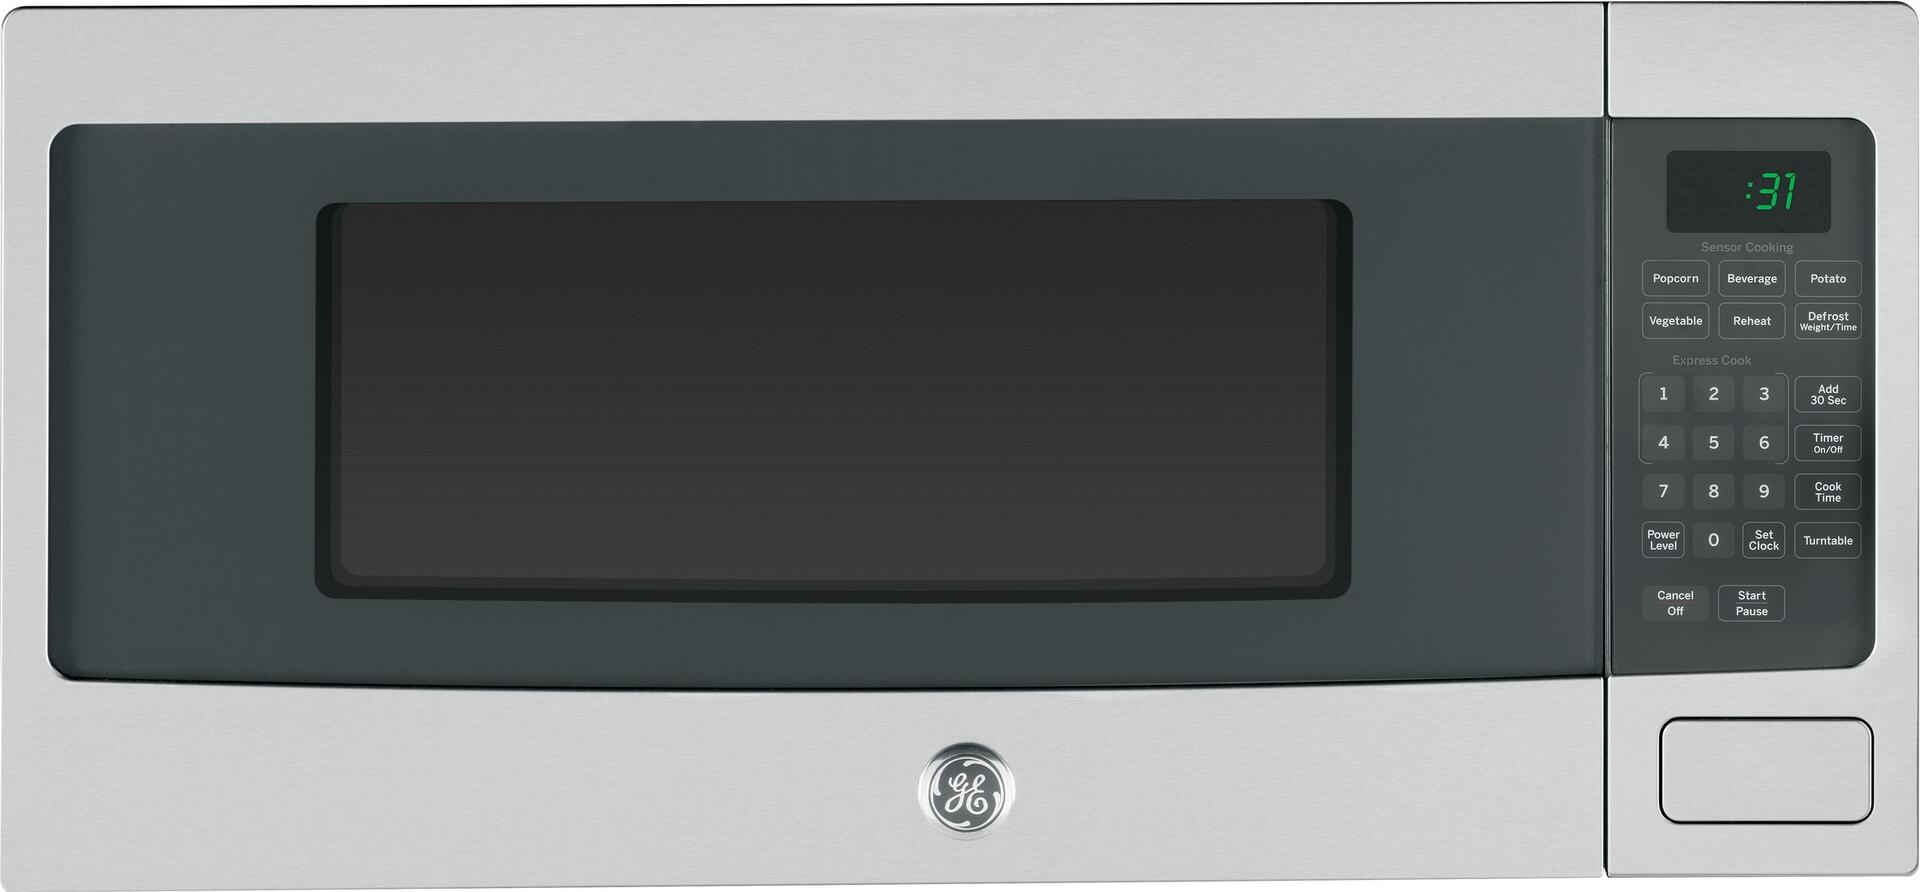 Ge profile pem31sfss 24 inch countertop microwave in stainless ge profile 1 fandeluxe Choice Image